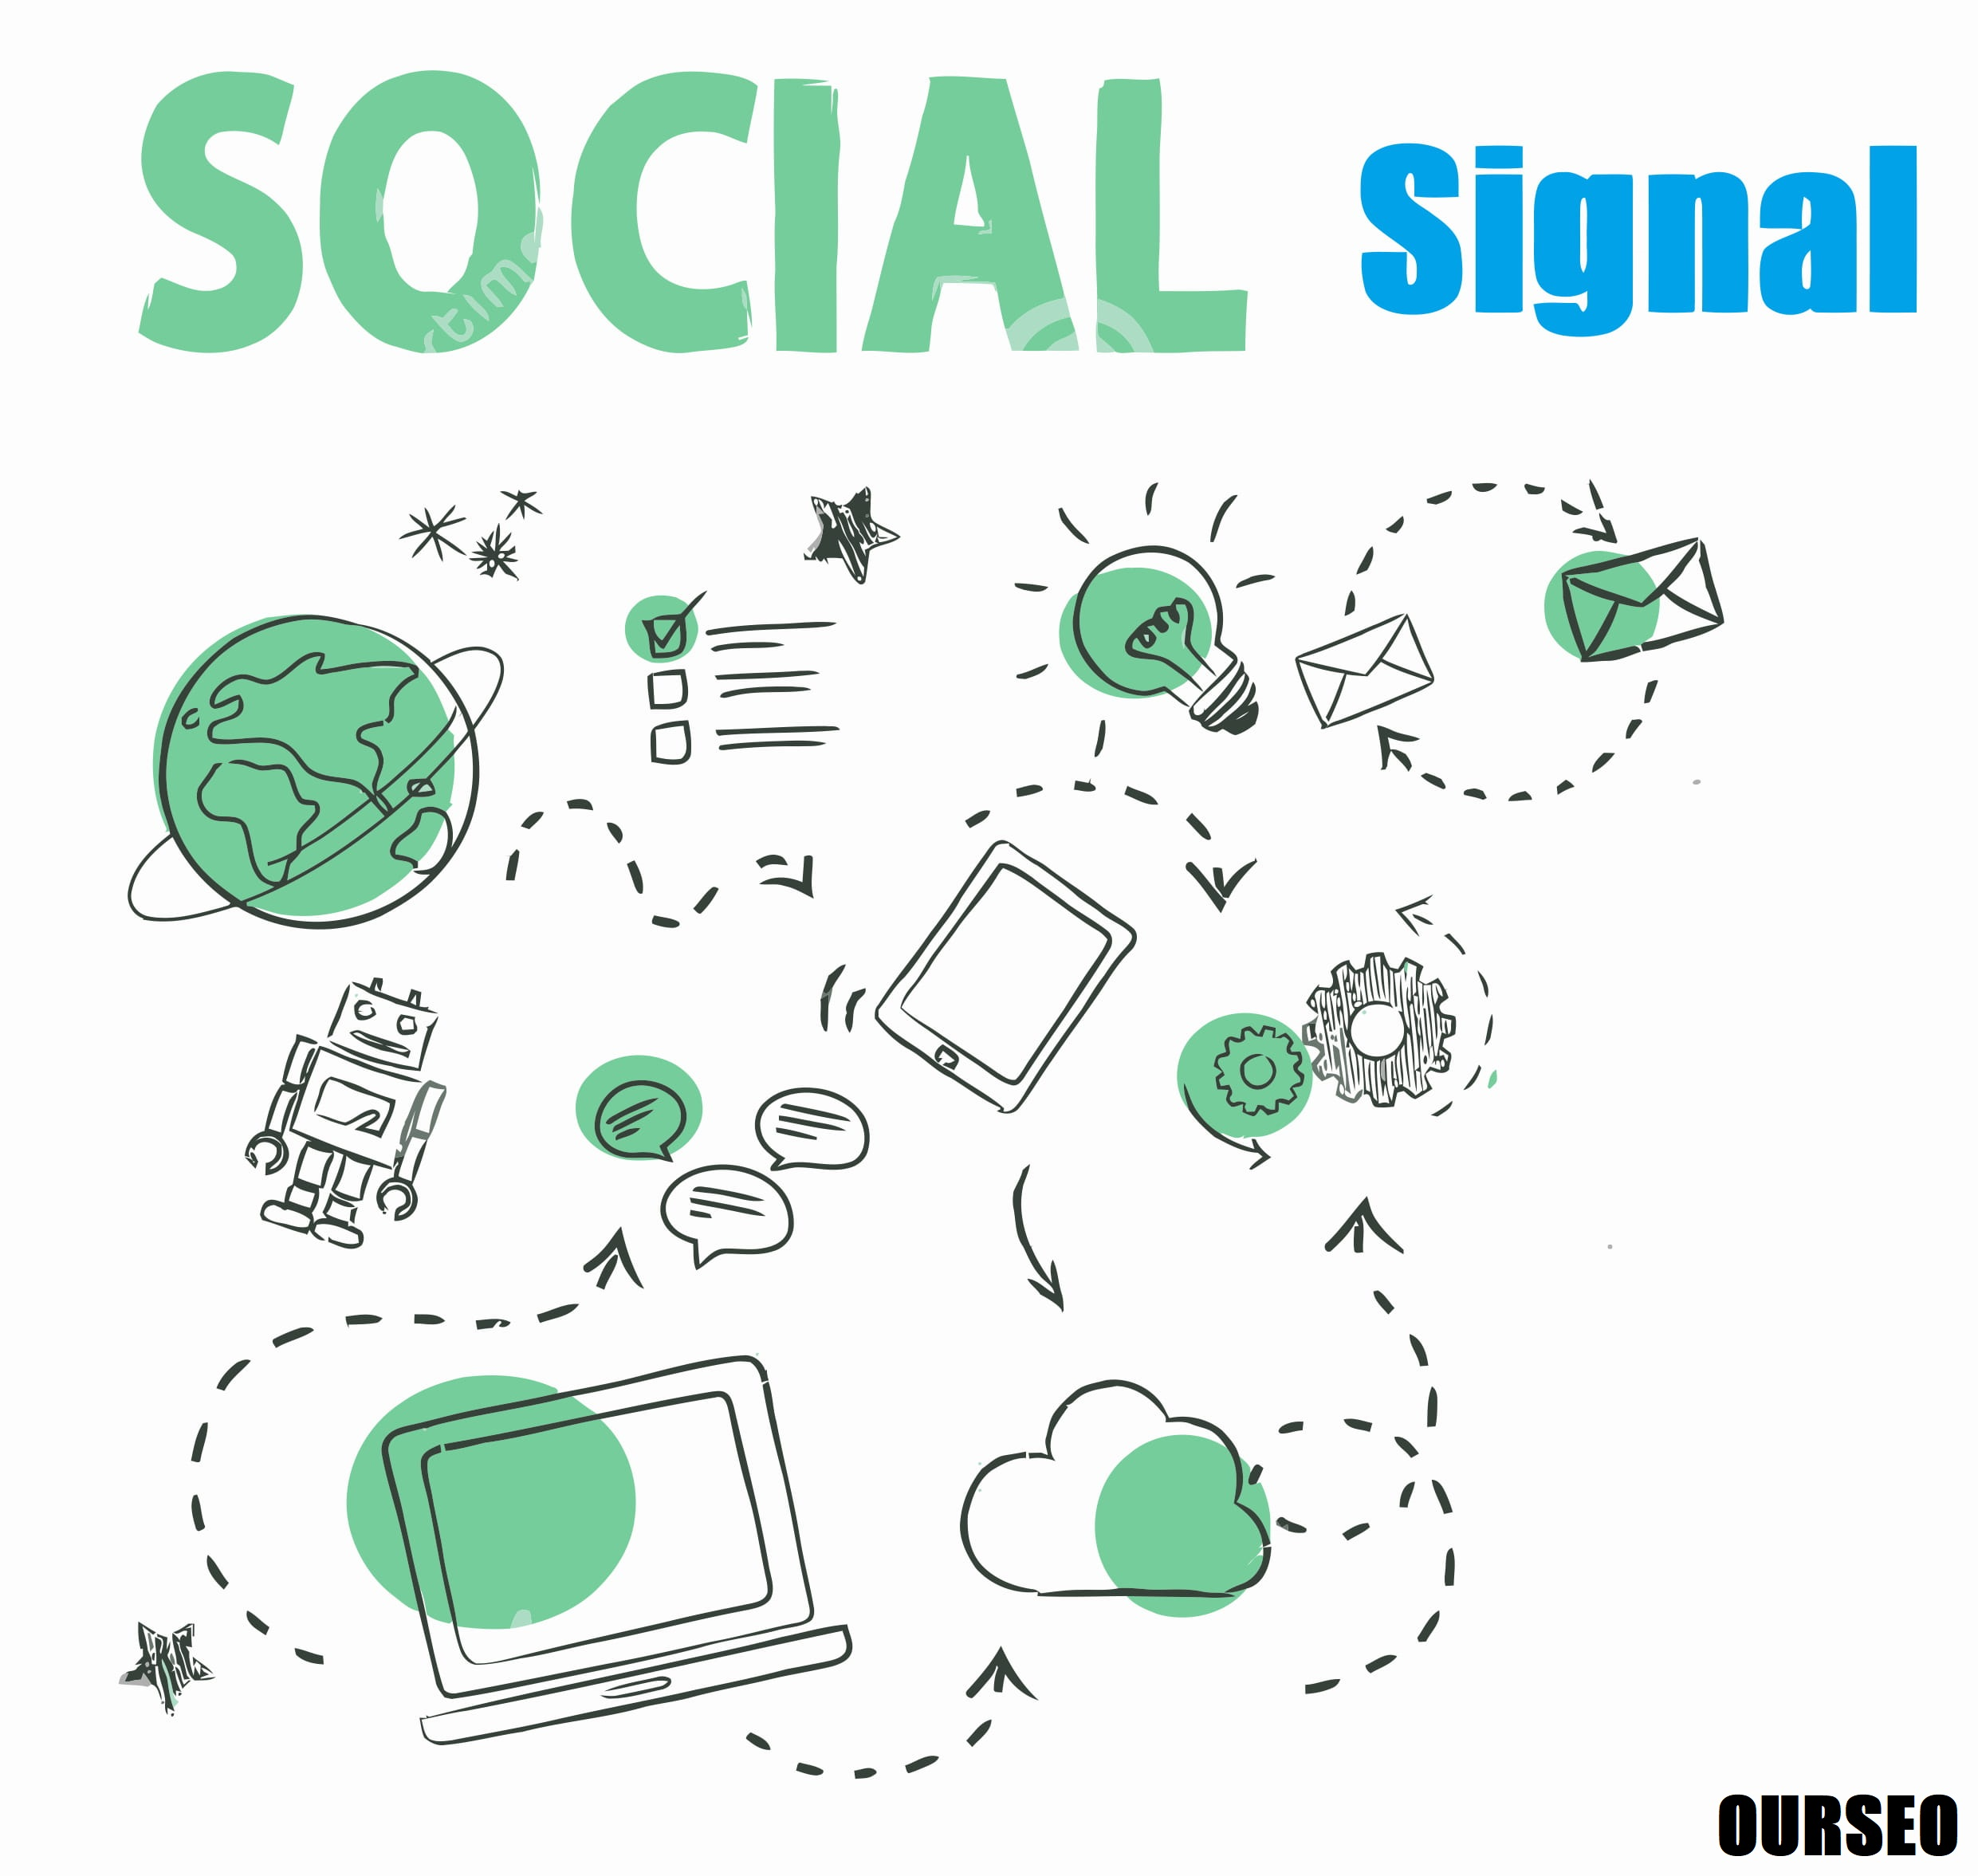 200 Social Signals Backlinks - With PROOF